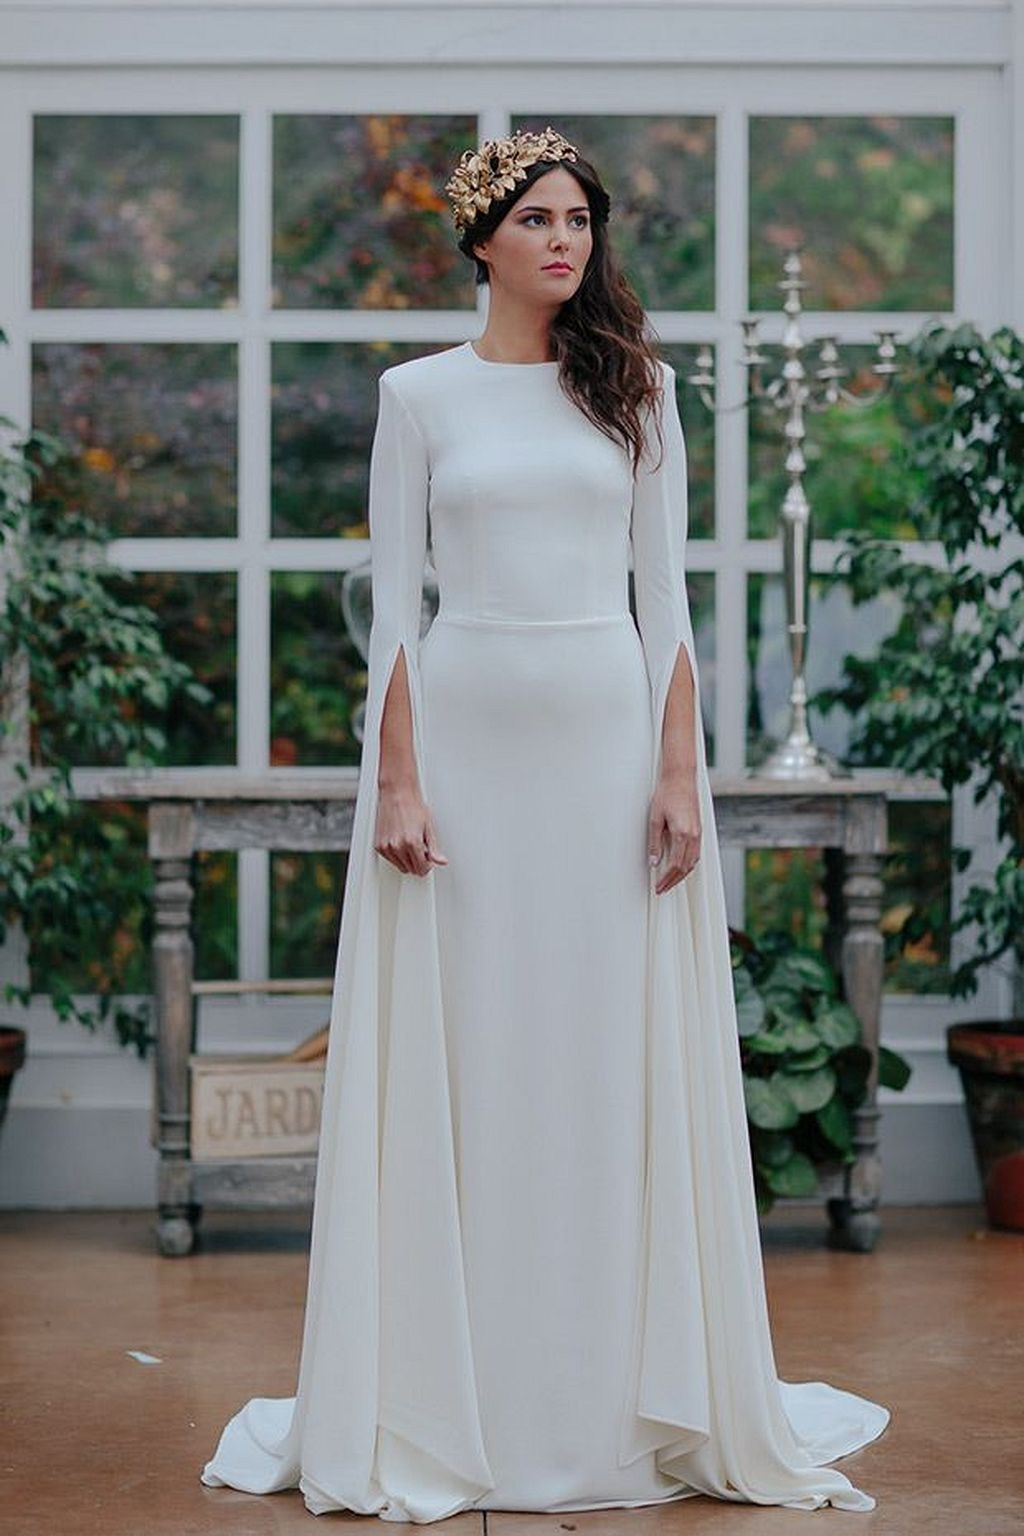 20+ Elegant Wedding Dress with Long Sleeves | Elegant wedding dress ...